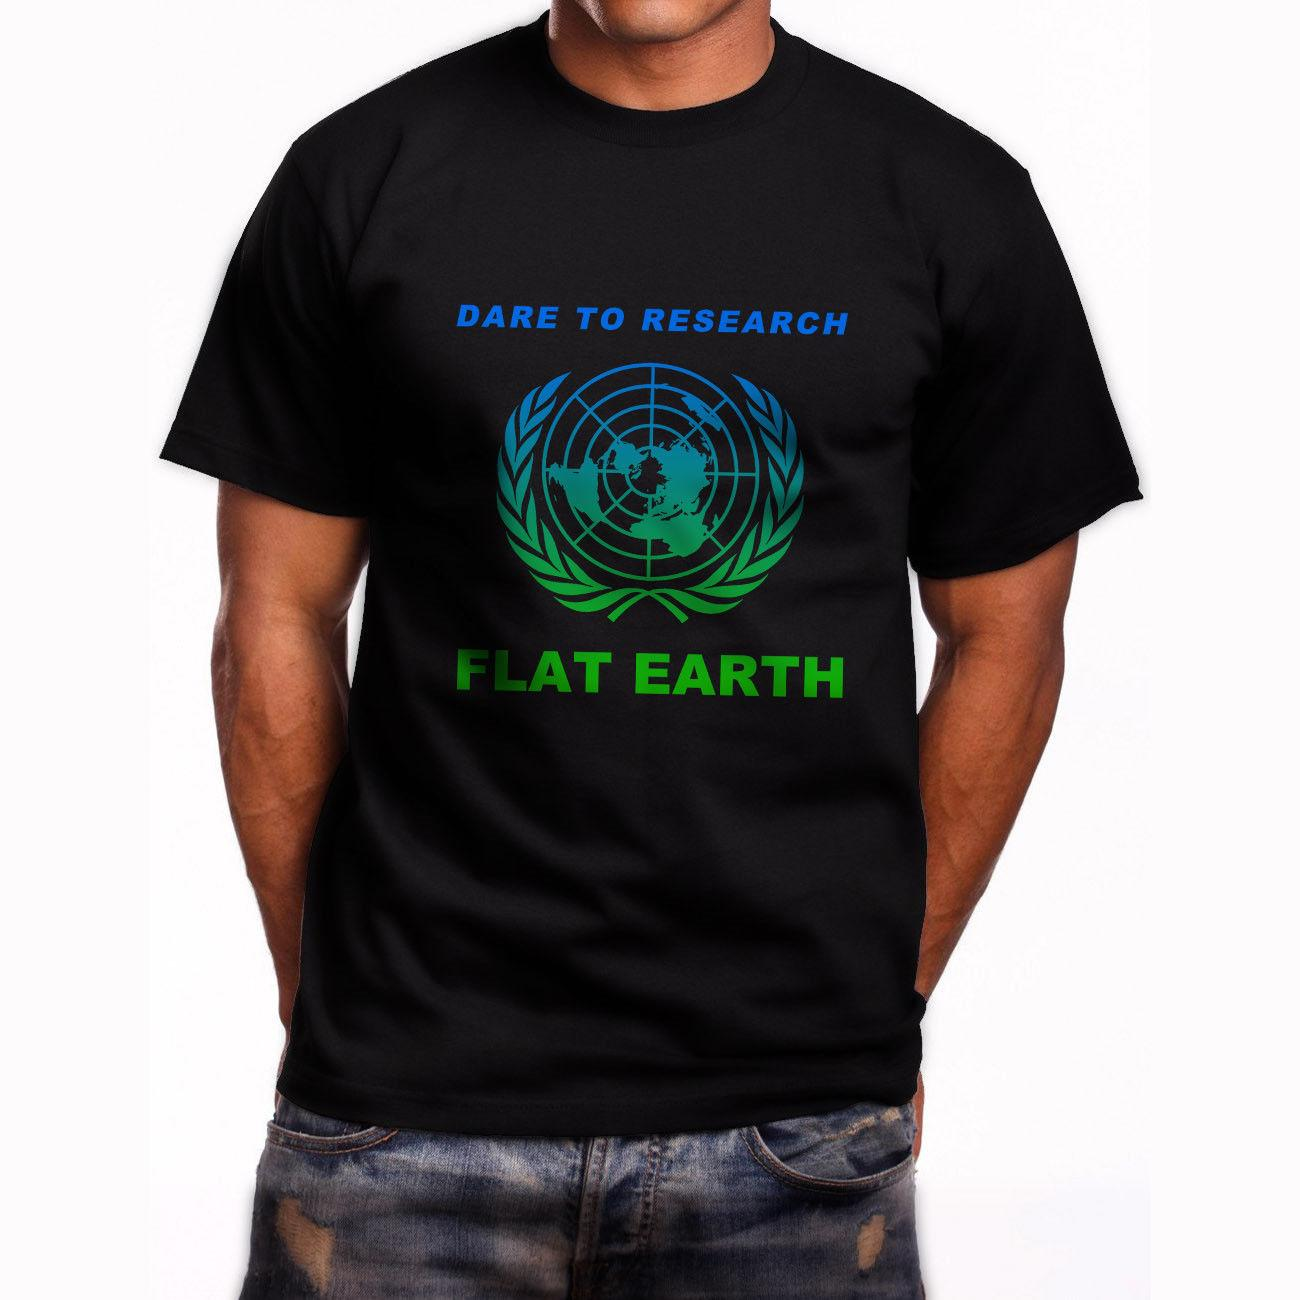 42c61d48 Research Flat Earth Conspiracy Illuminati Short Sleeve Black T Shirt S 5XL  Casual Male Tshirt Men Tops Tees Tees Cute T Shirts Nerd T Shirts From ...